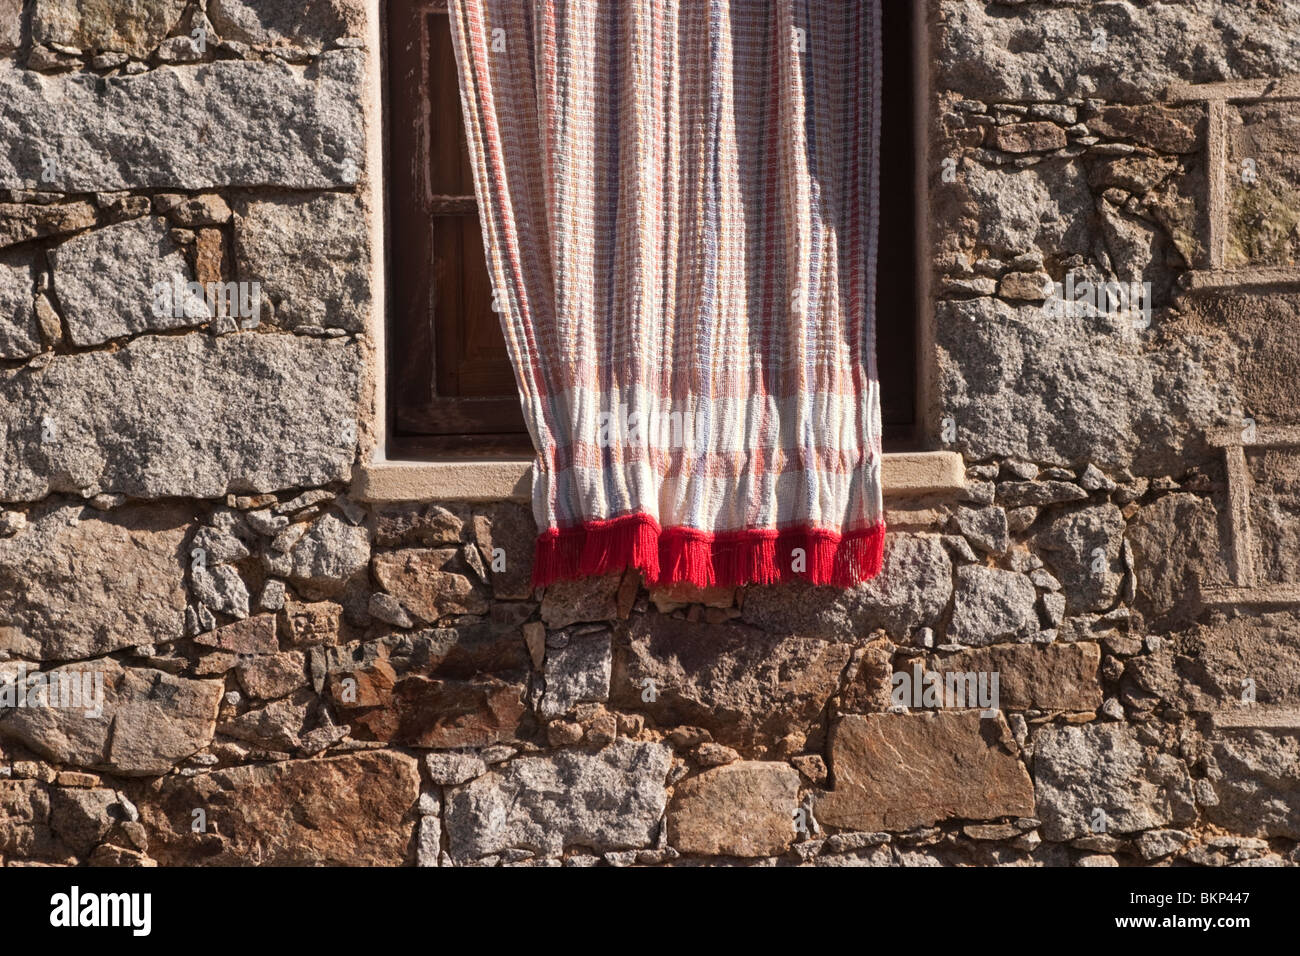 Curtain over window in stone built house Corsica Stock Photo